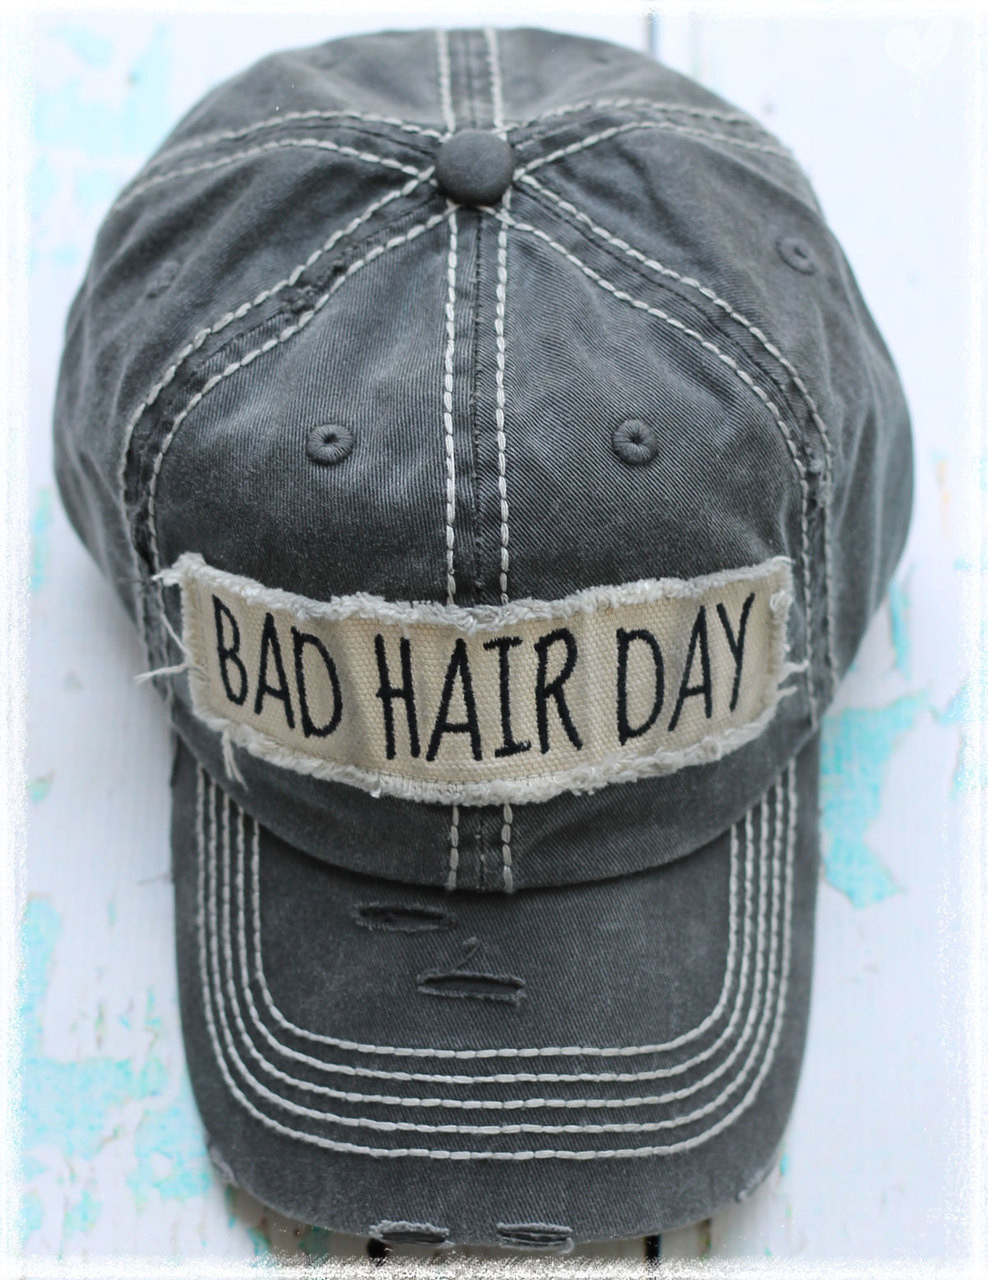 Bad Hair Day patch charcoal baseball cap by Dang Chicks